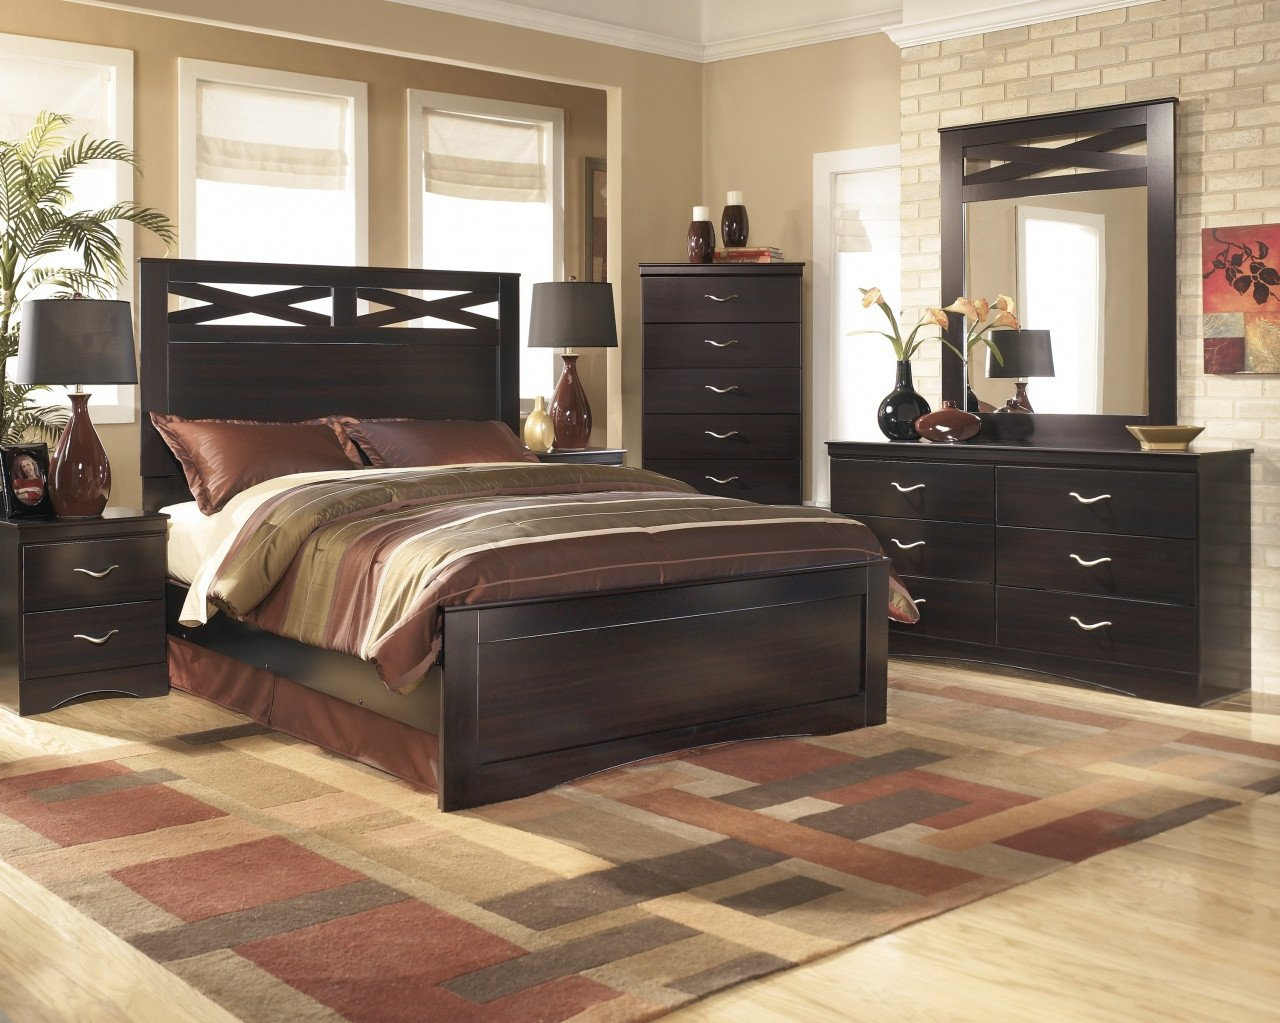 Used Queen Bedroom Set New ashley Furniture Queen Bedroom Sets – the New Daily Nation